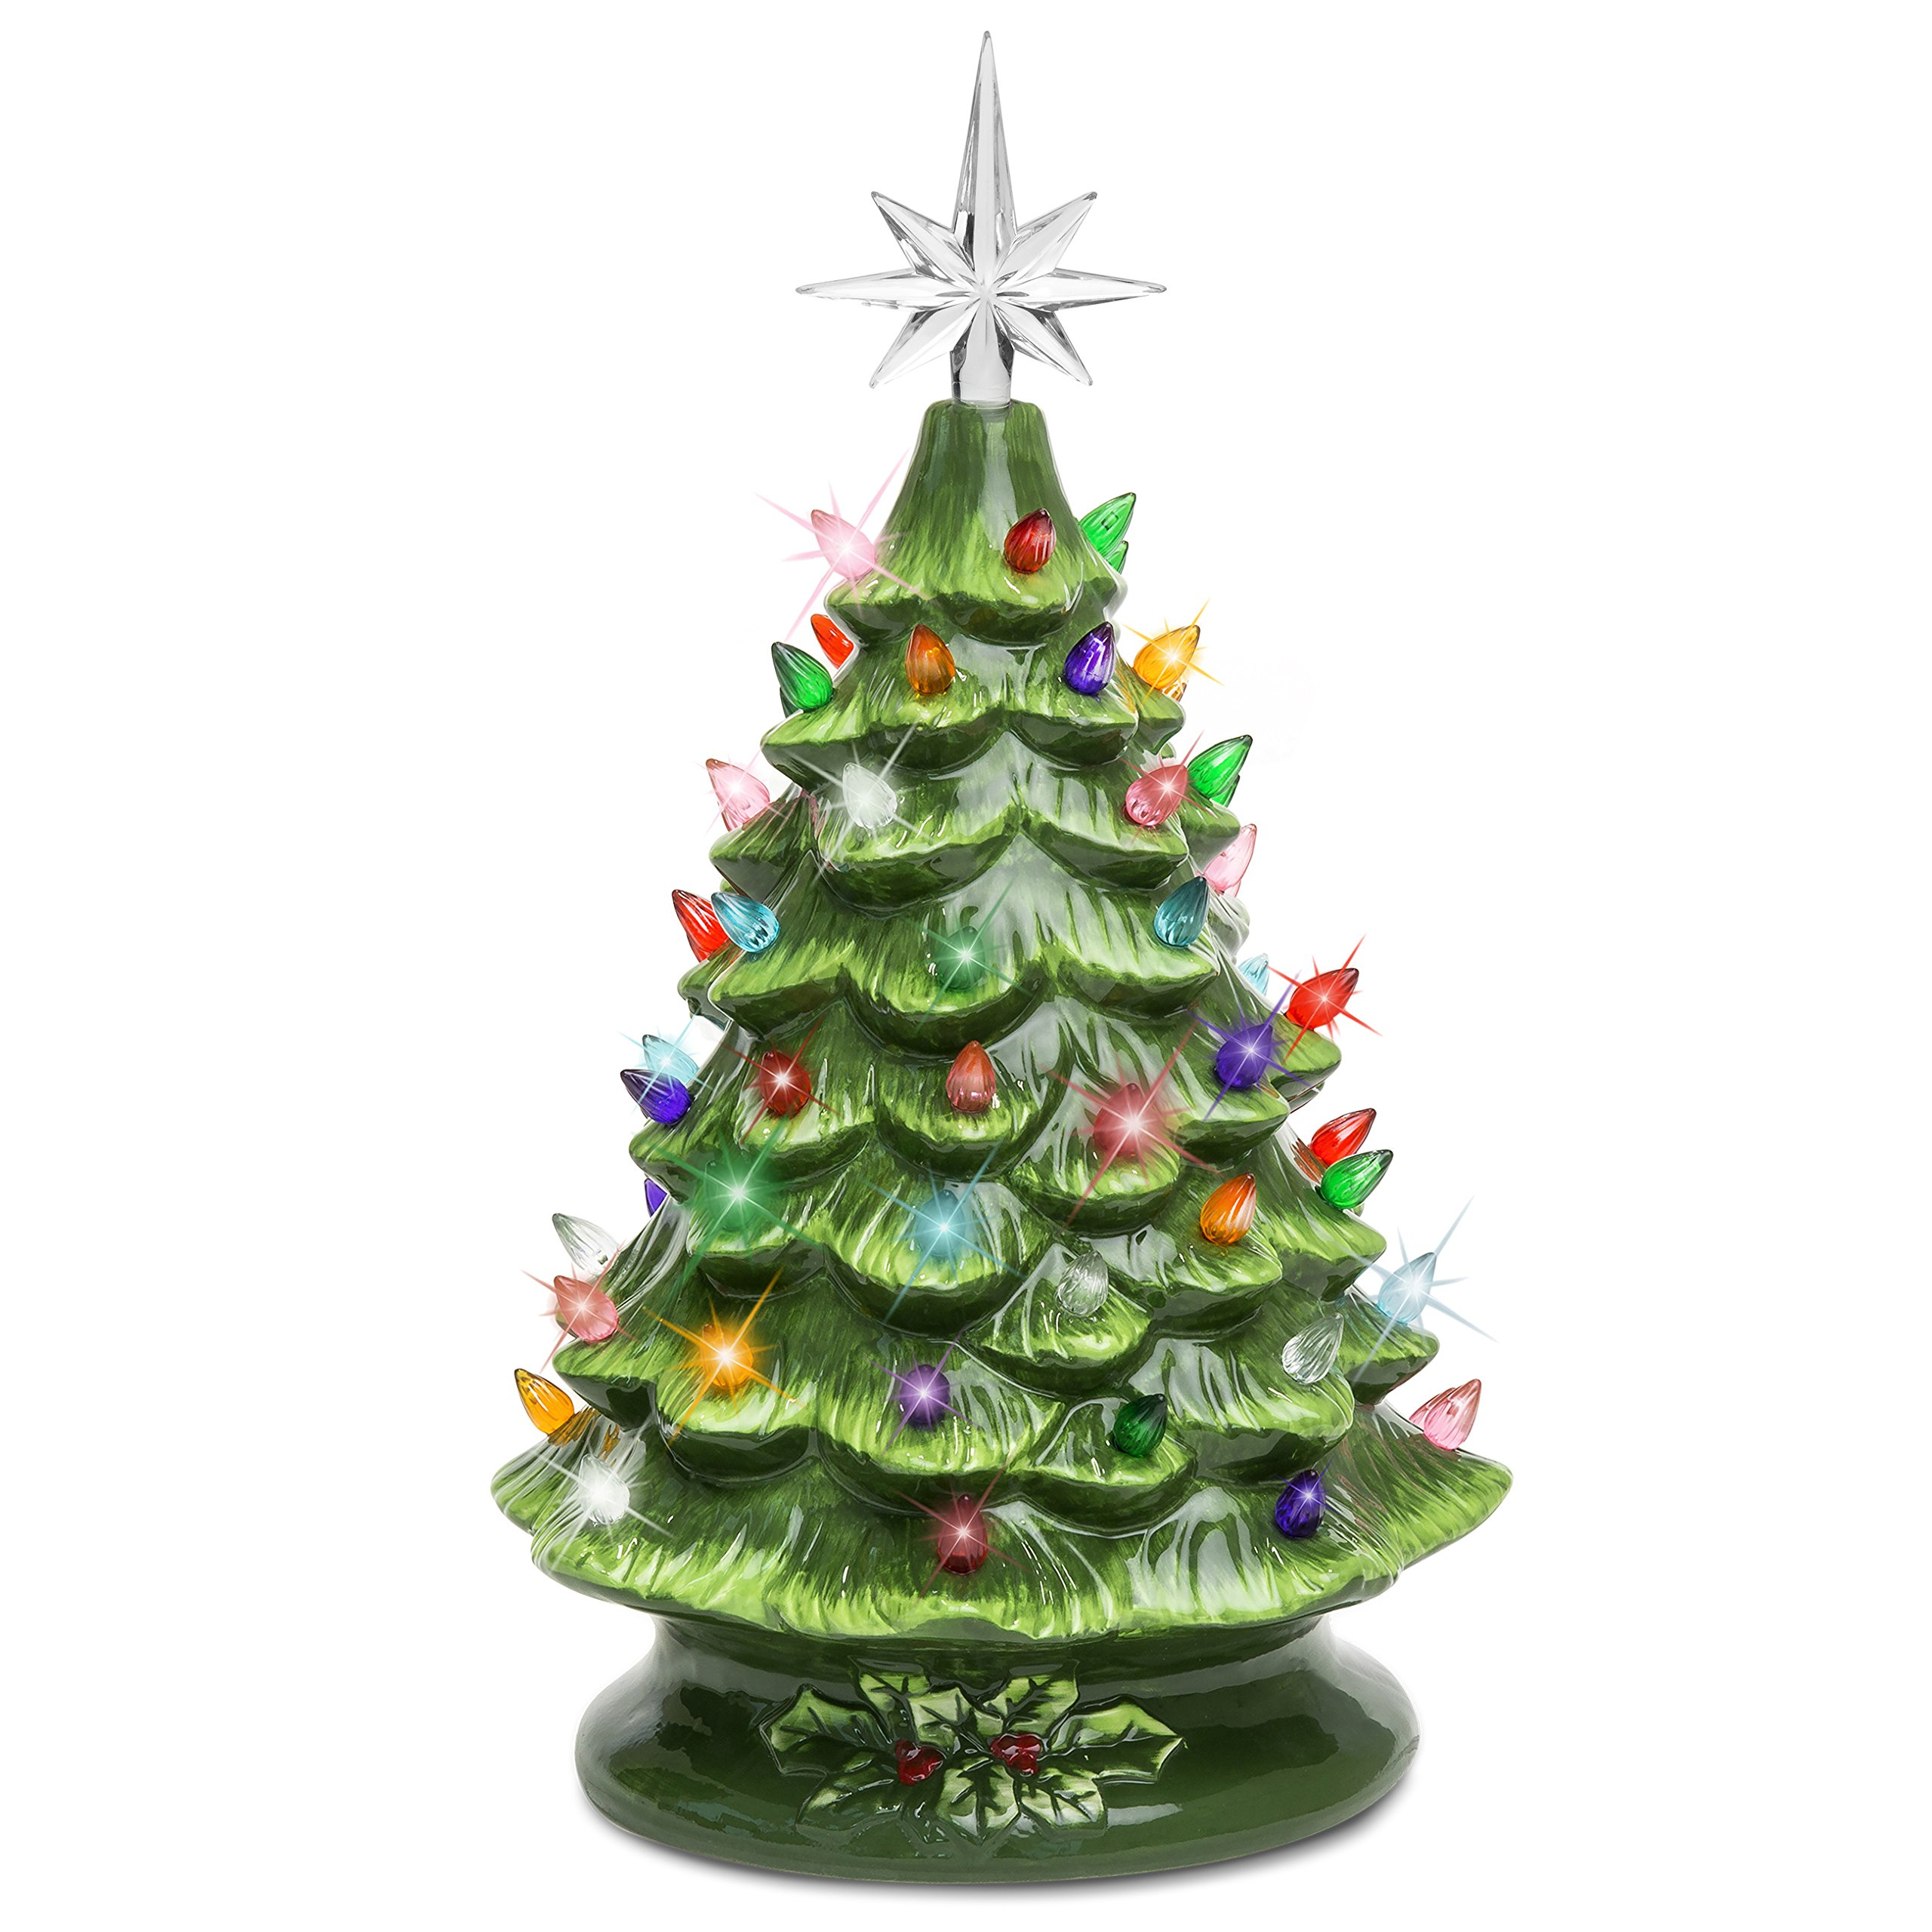 Best Choice Products 15in Pre-Lit Hand-Painted Ceramic Tabletop Christmas Tree w/ 50 Lights, Star Topper - Green